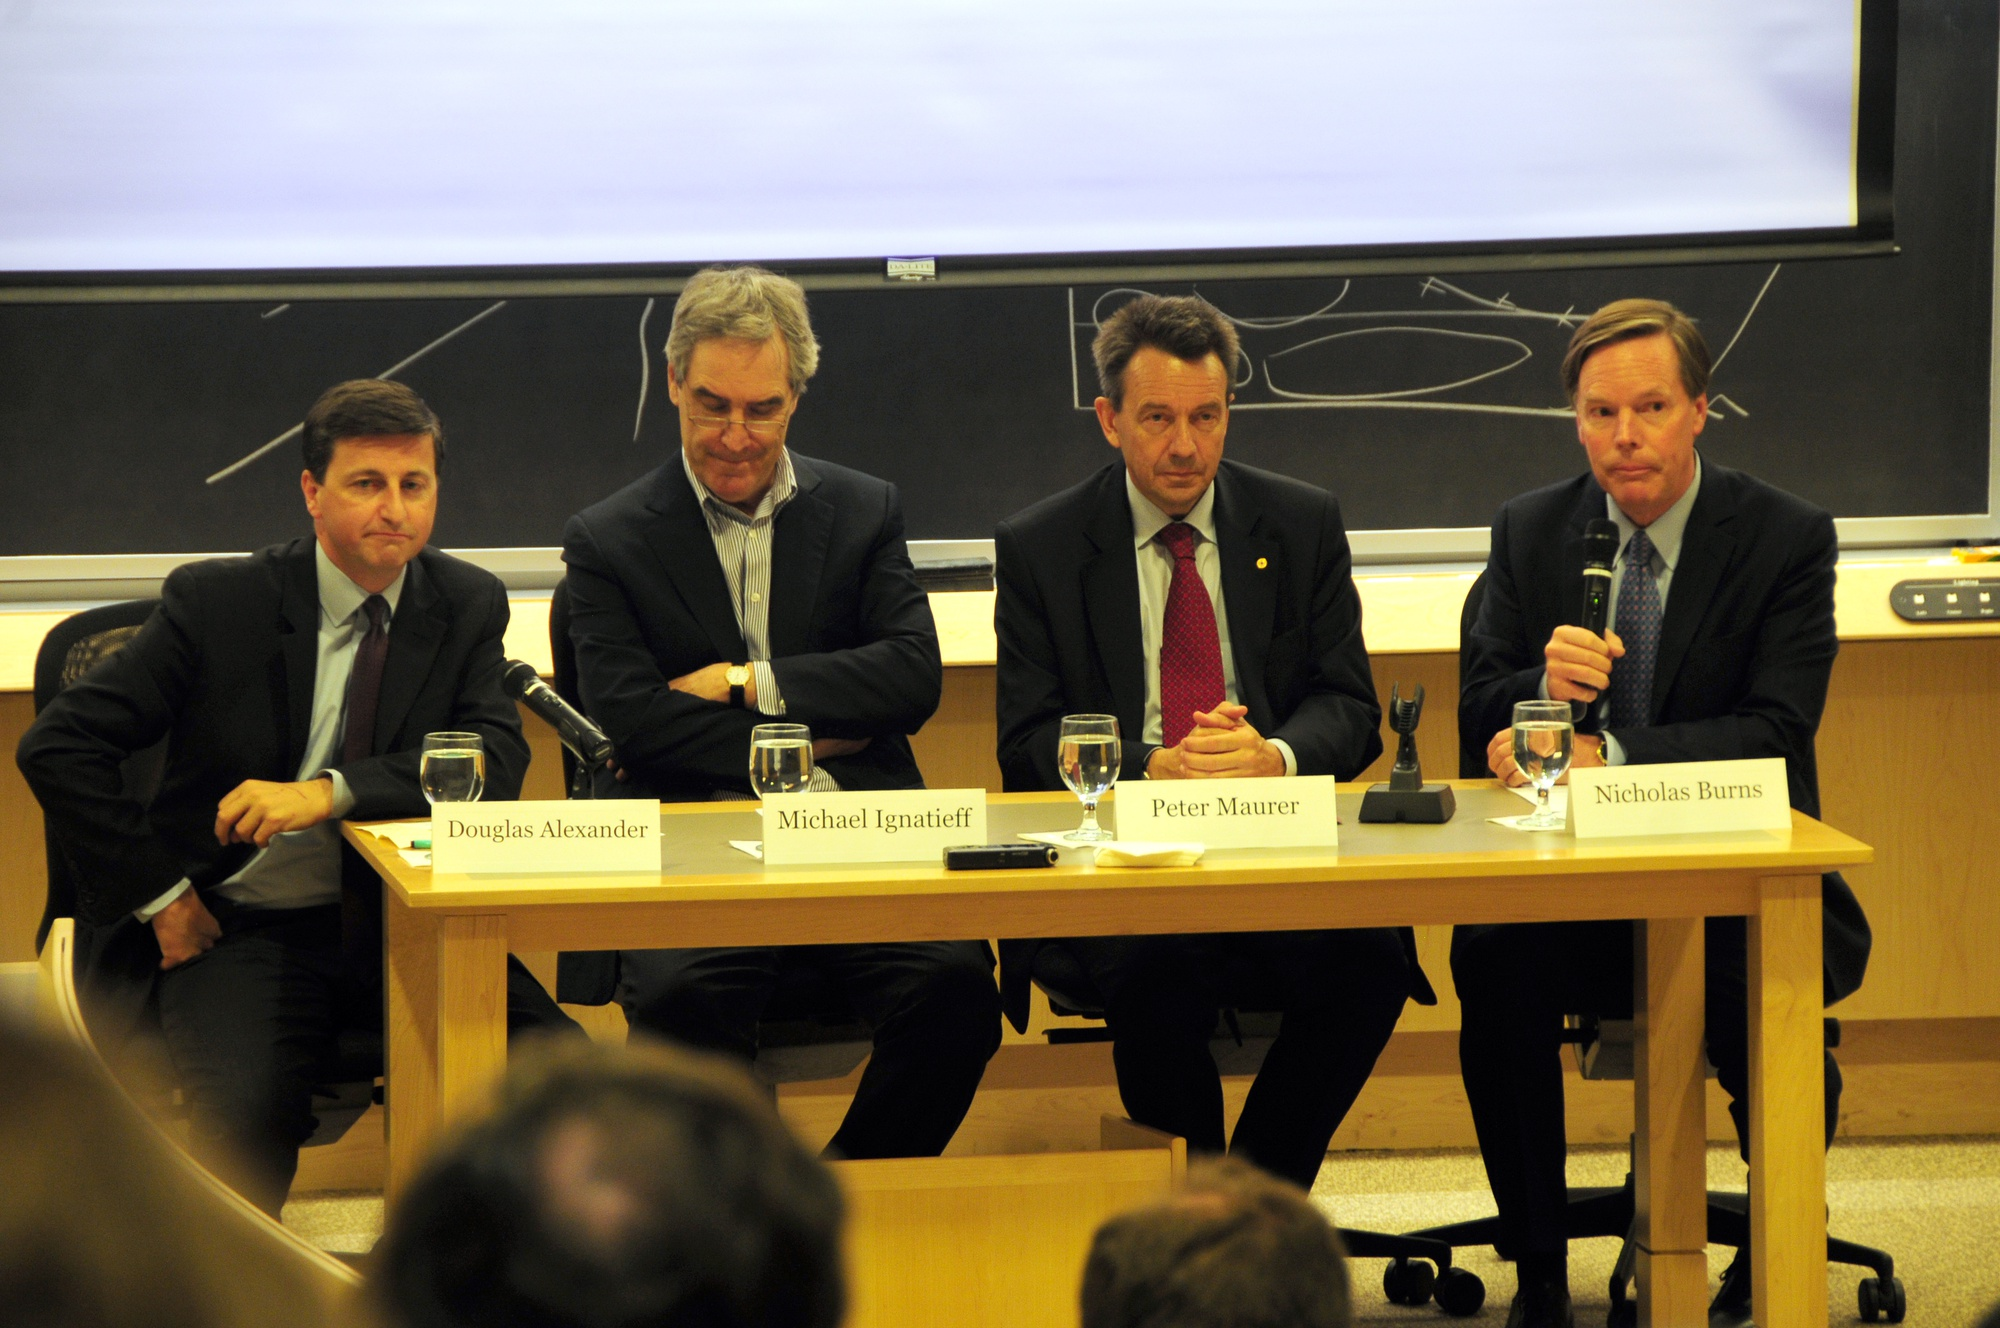 Peter Maurer, right, Douglas Alexander, left, and Michael Ignatieff, center, discuss the current situation in Syria and the Middle East. The panel was moderated by Nicholas Burns.